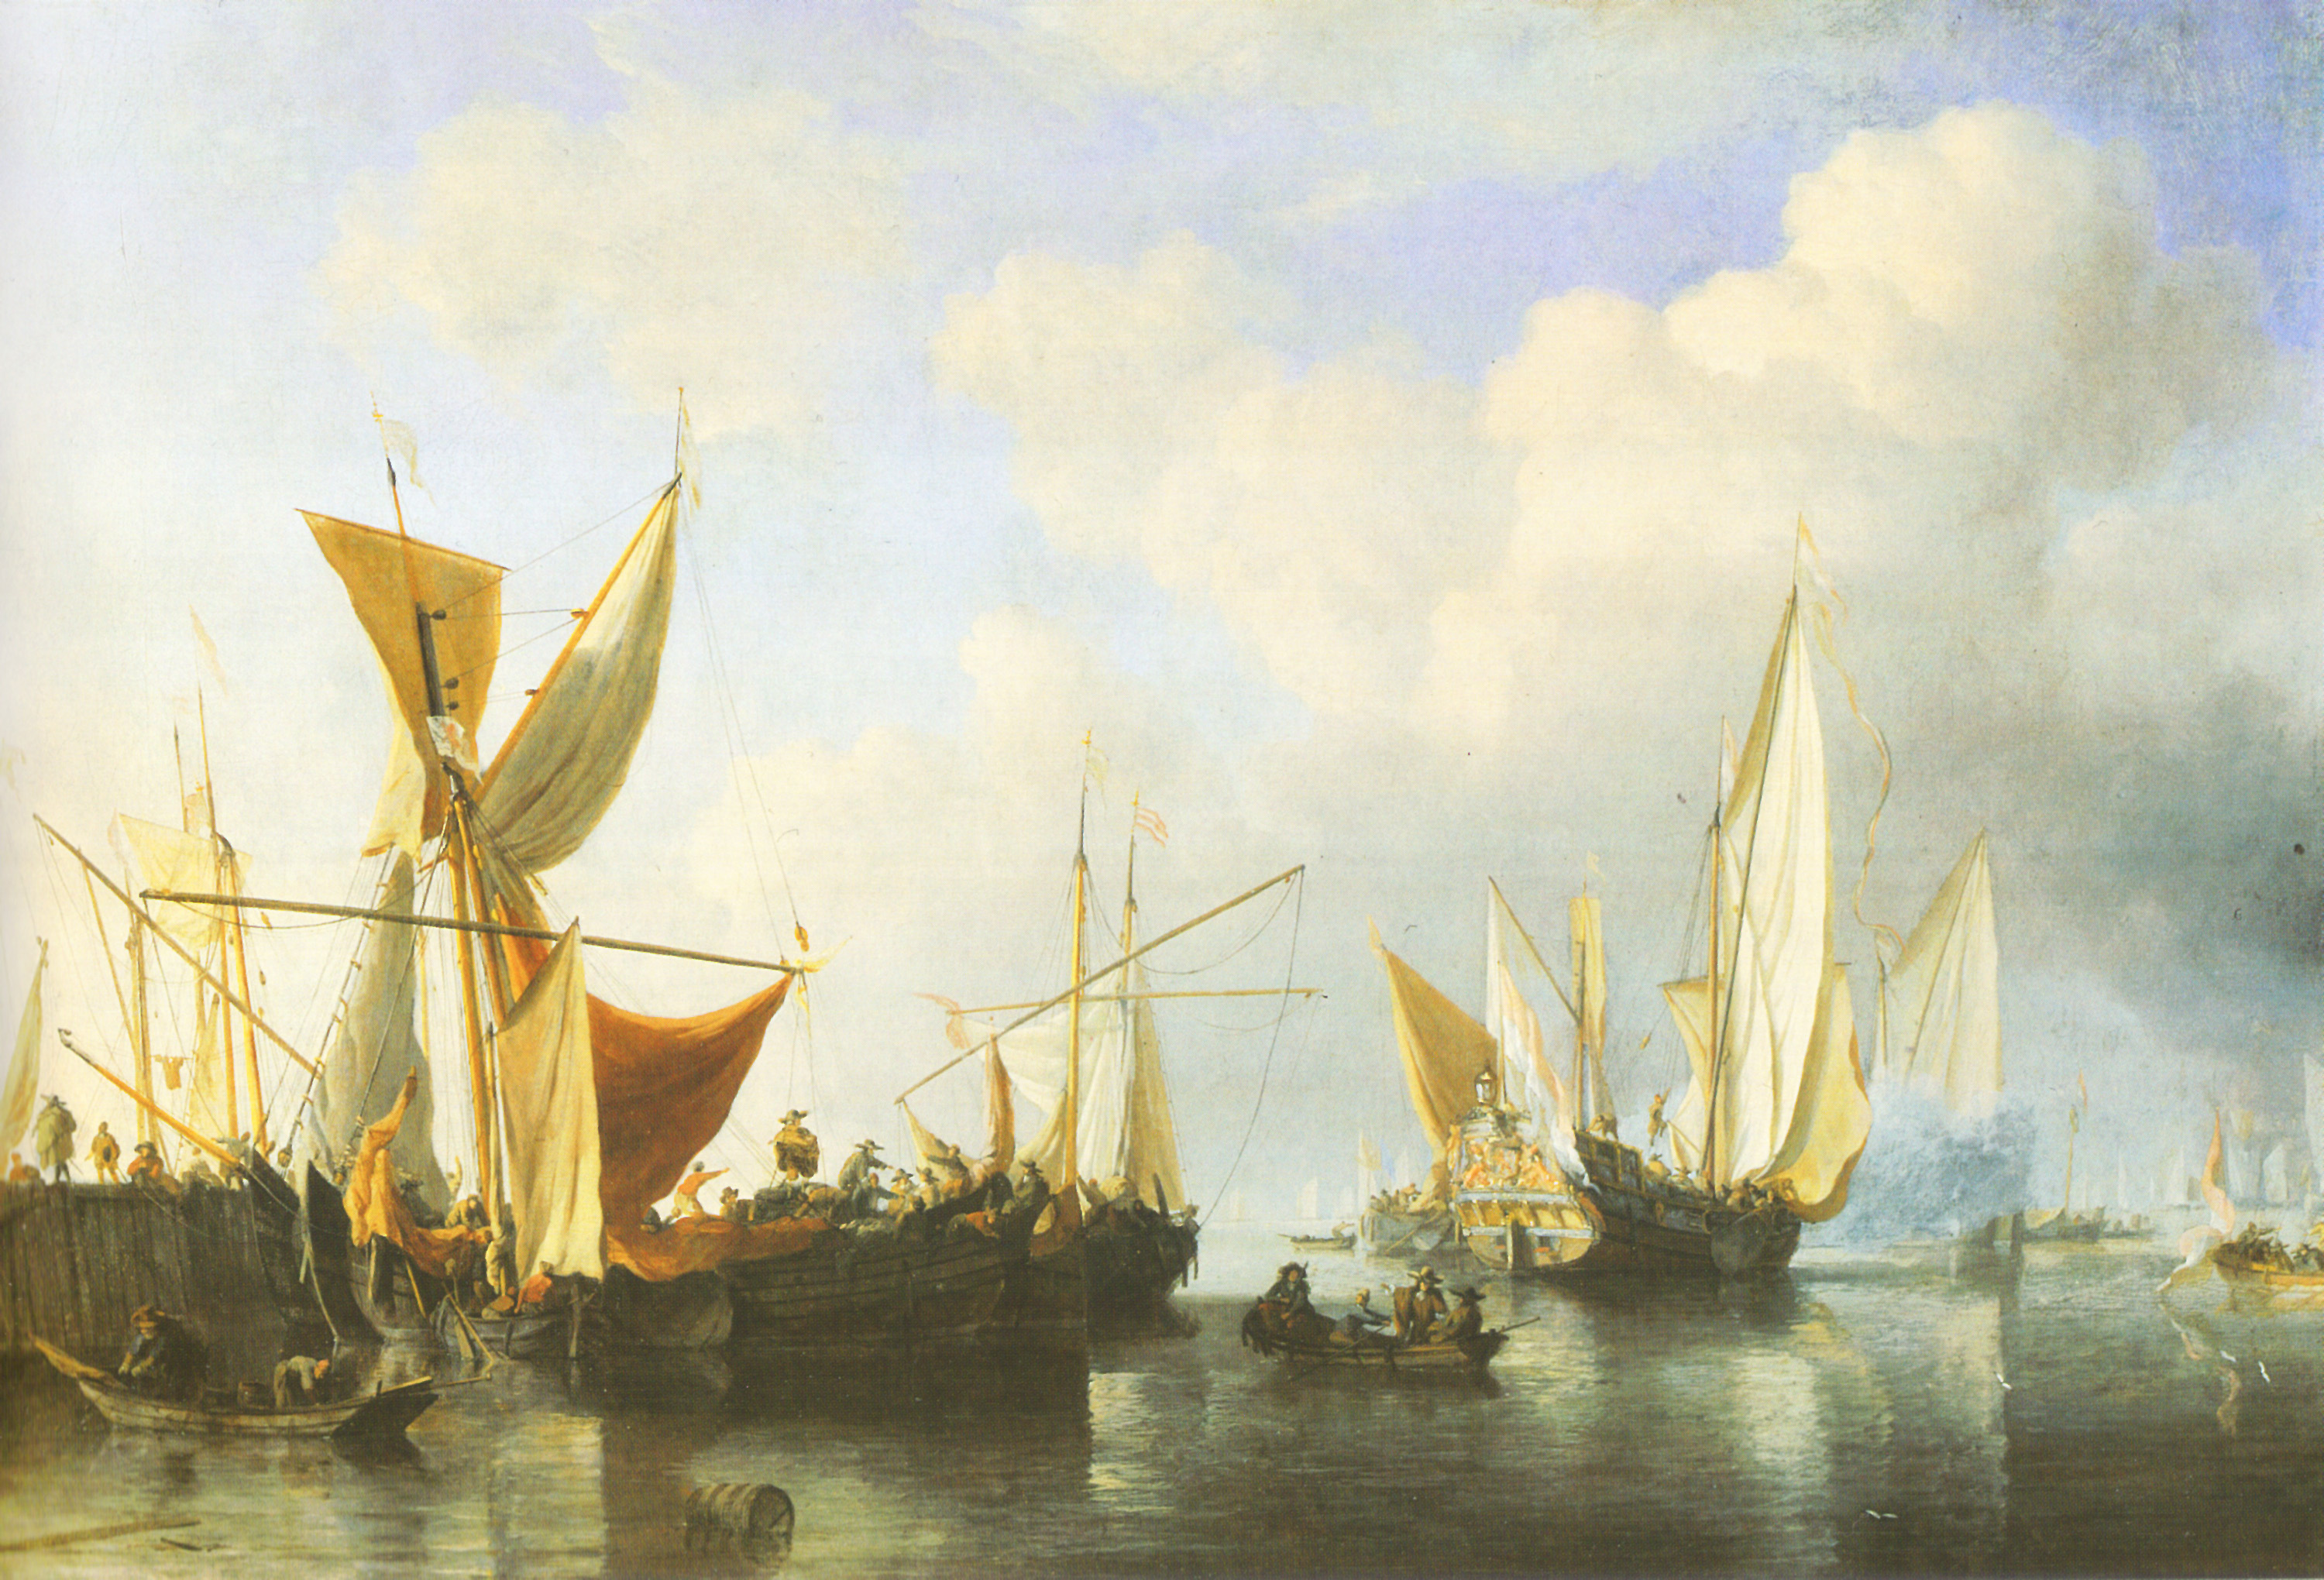 Ships-at-a-harbour-mole-and-a-yacht-sail